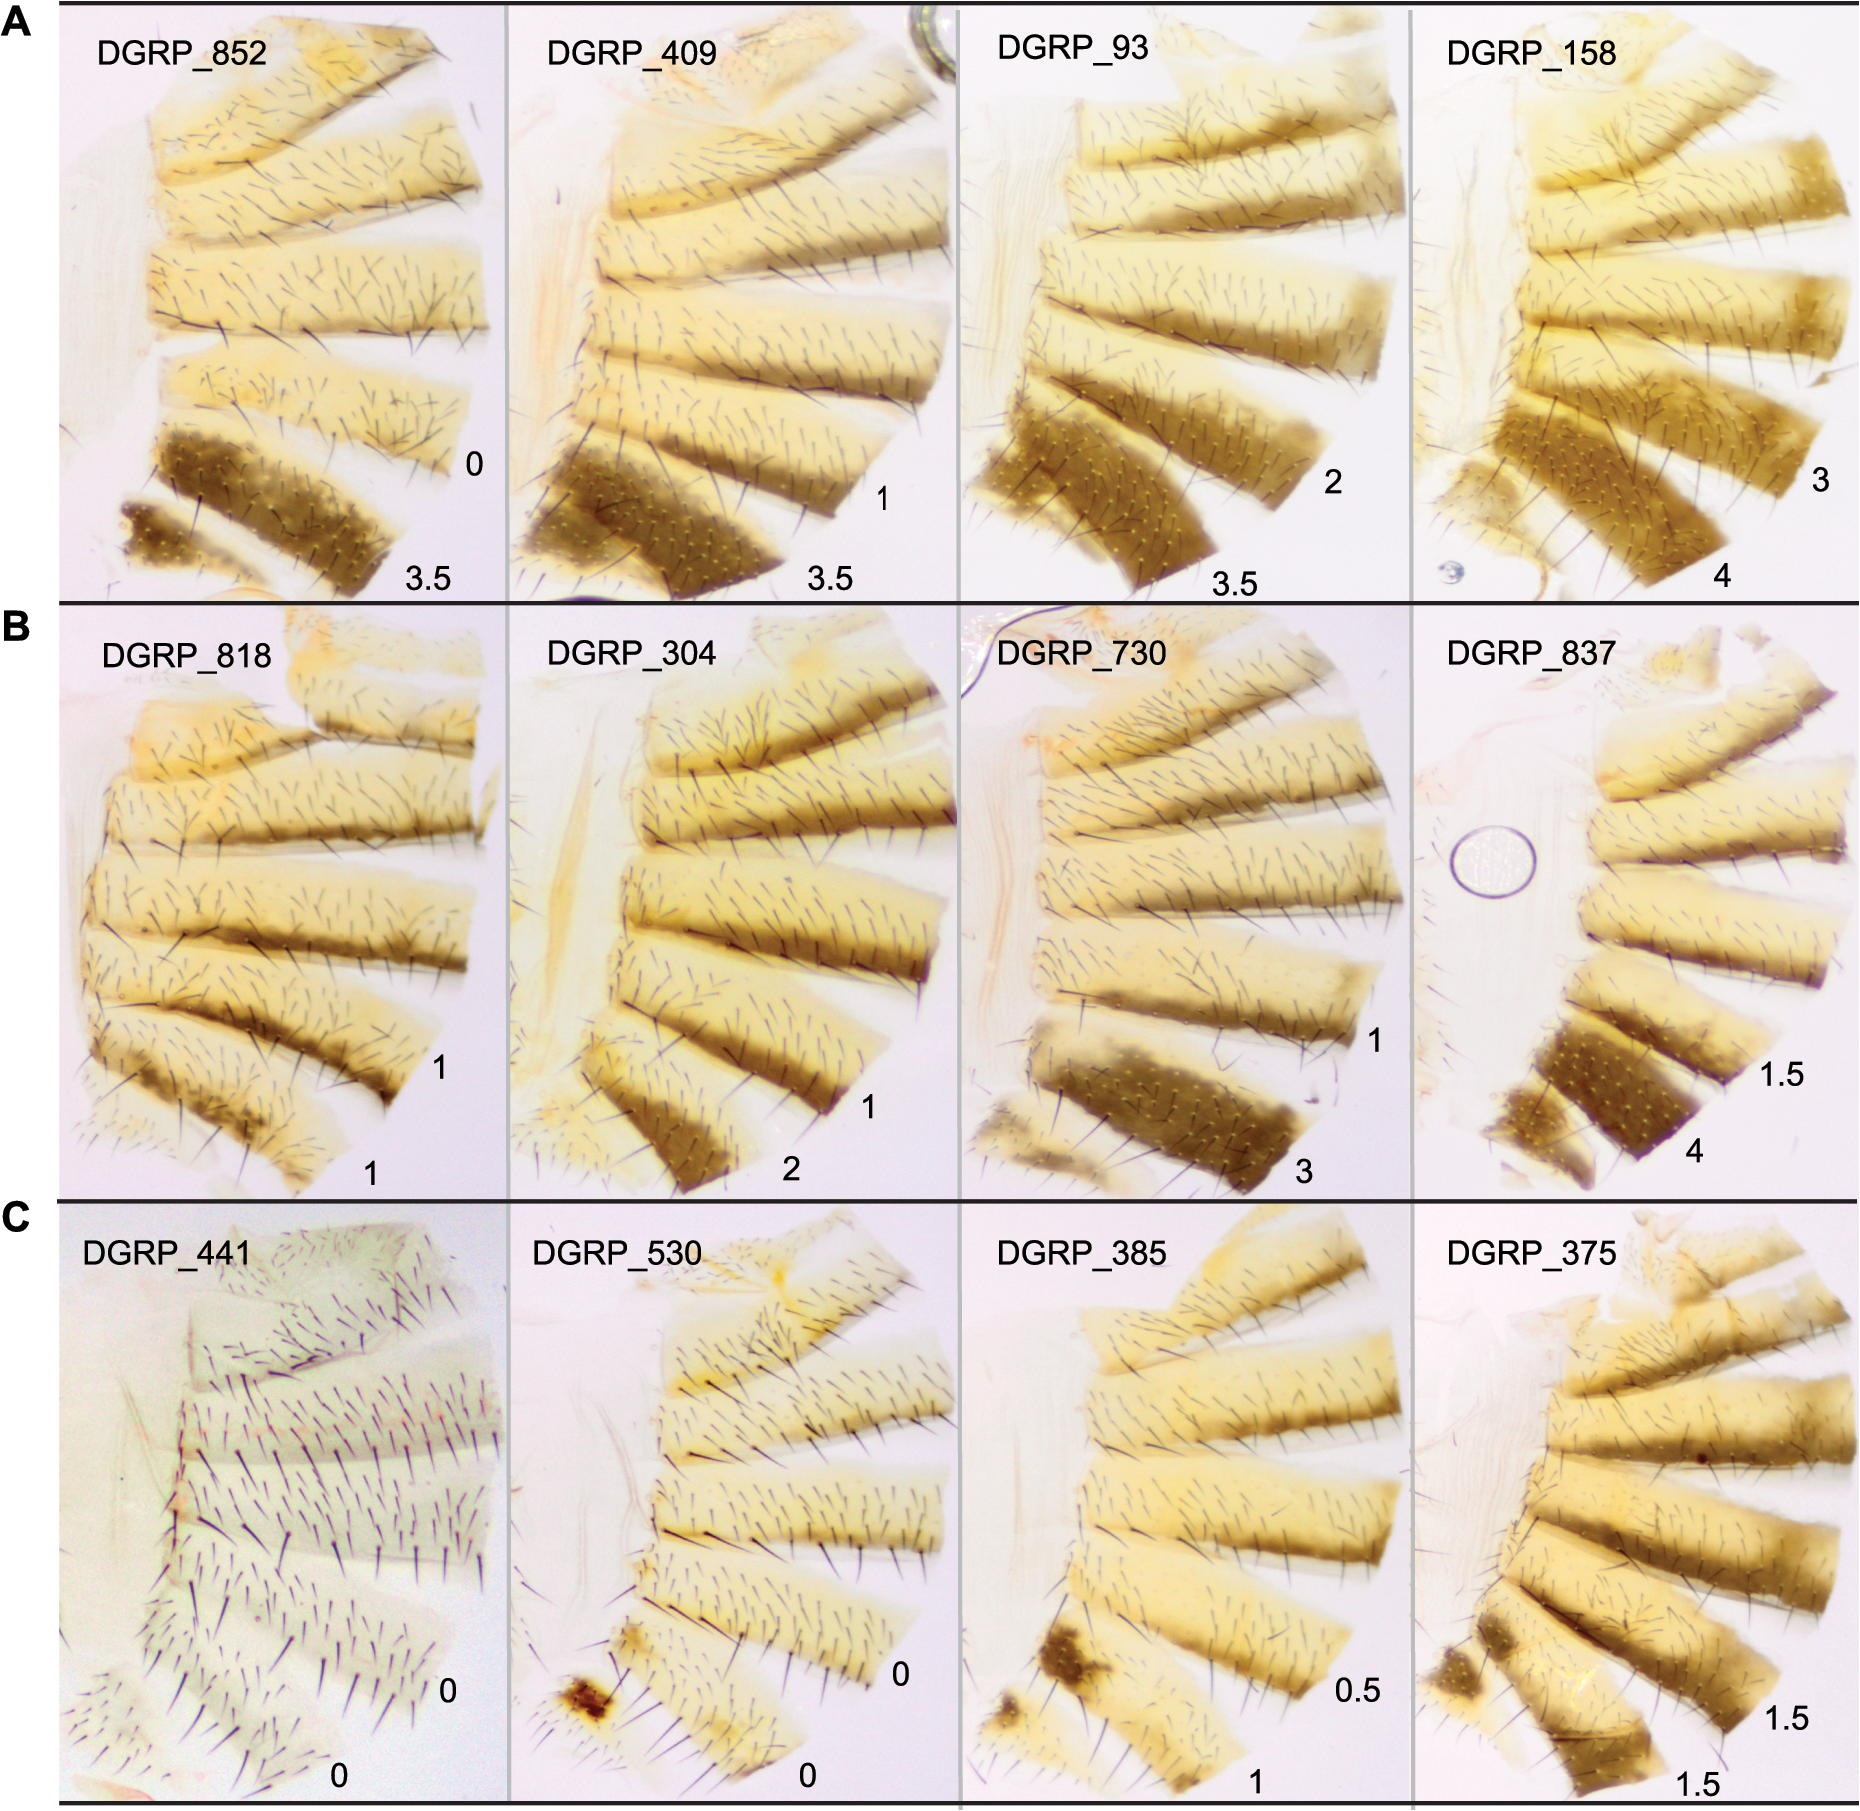 Natural variation in T5 and T6 pigmentation in the DGRP.